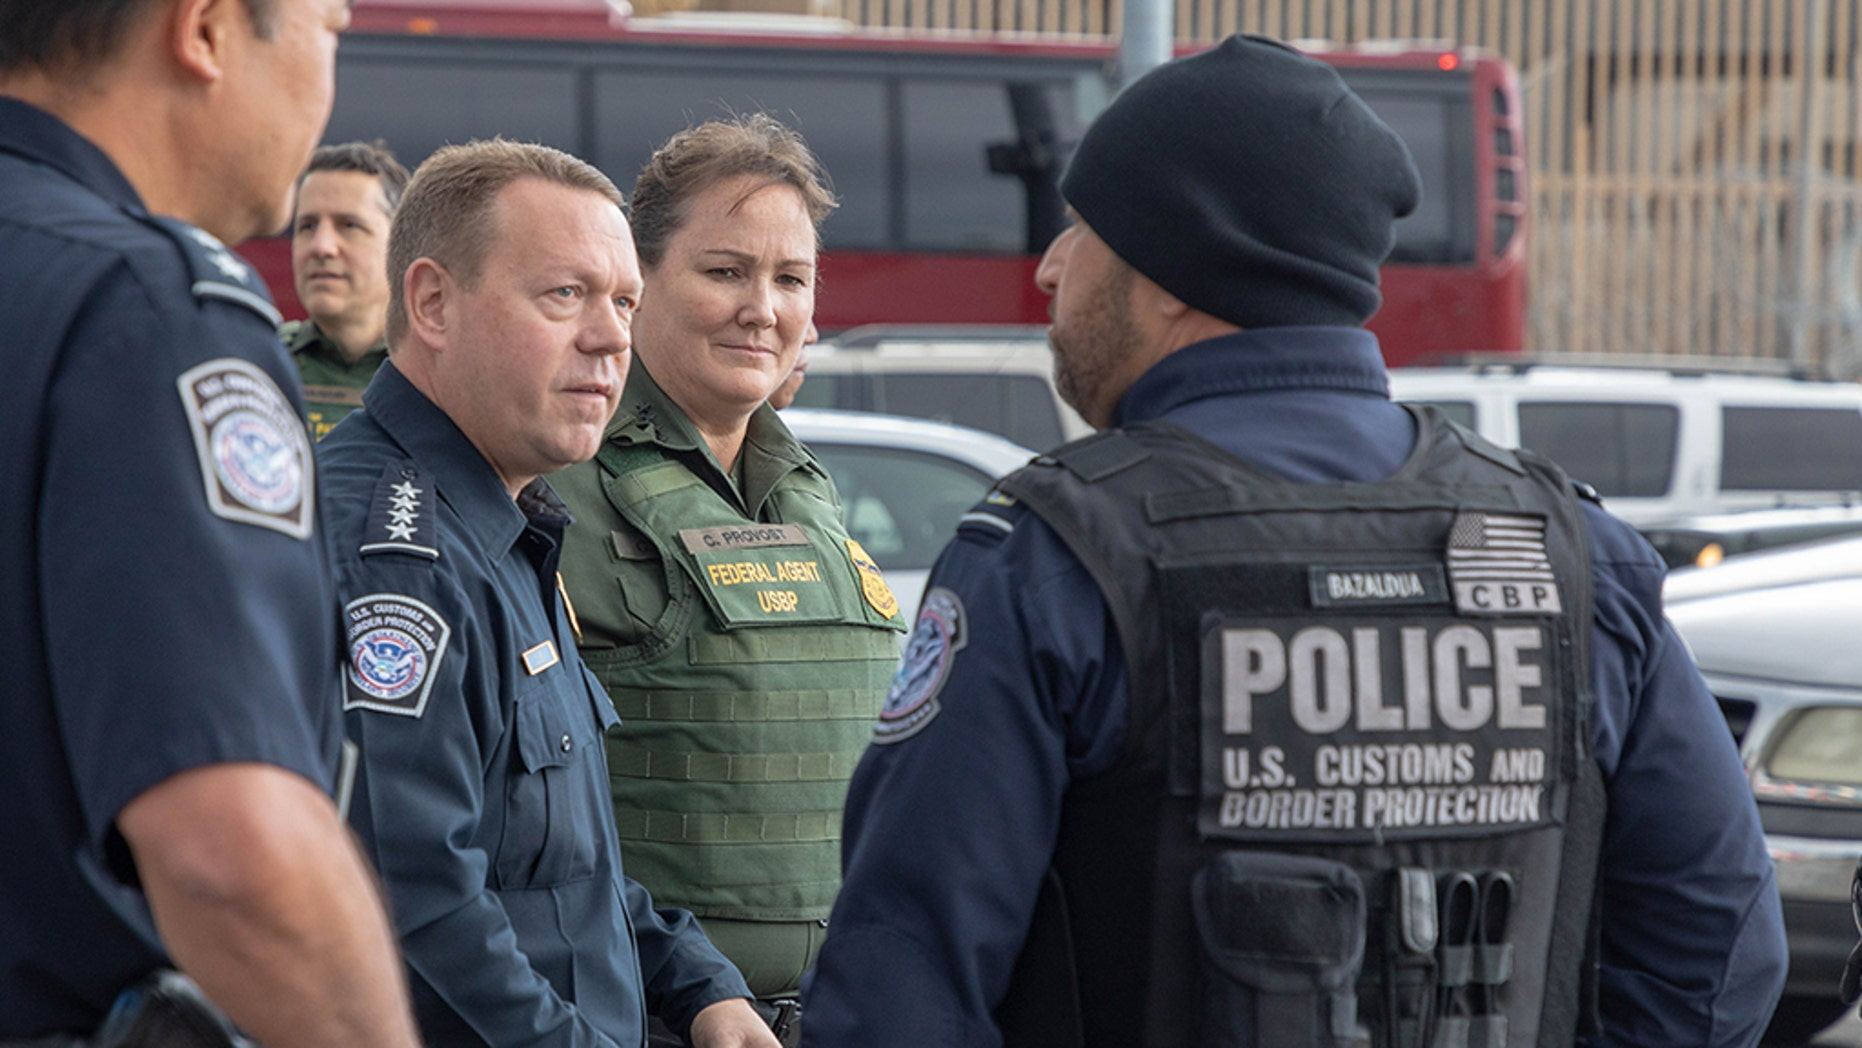 U.S. border officials visit the San Ysidro Port of Entry. Photos by Mani Albrecht U.S. Customs and Border Protection Office of Public Affairs Visual Communications Division